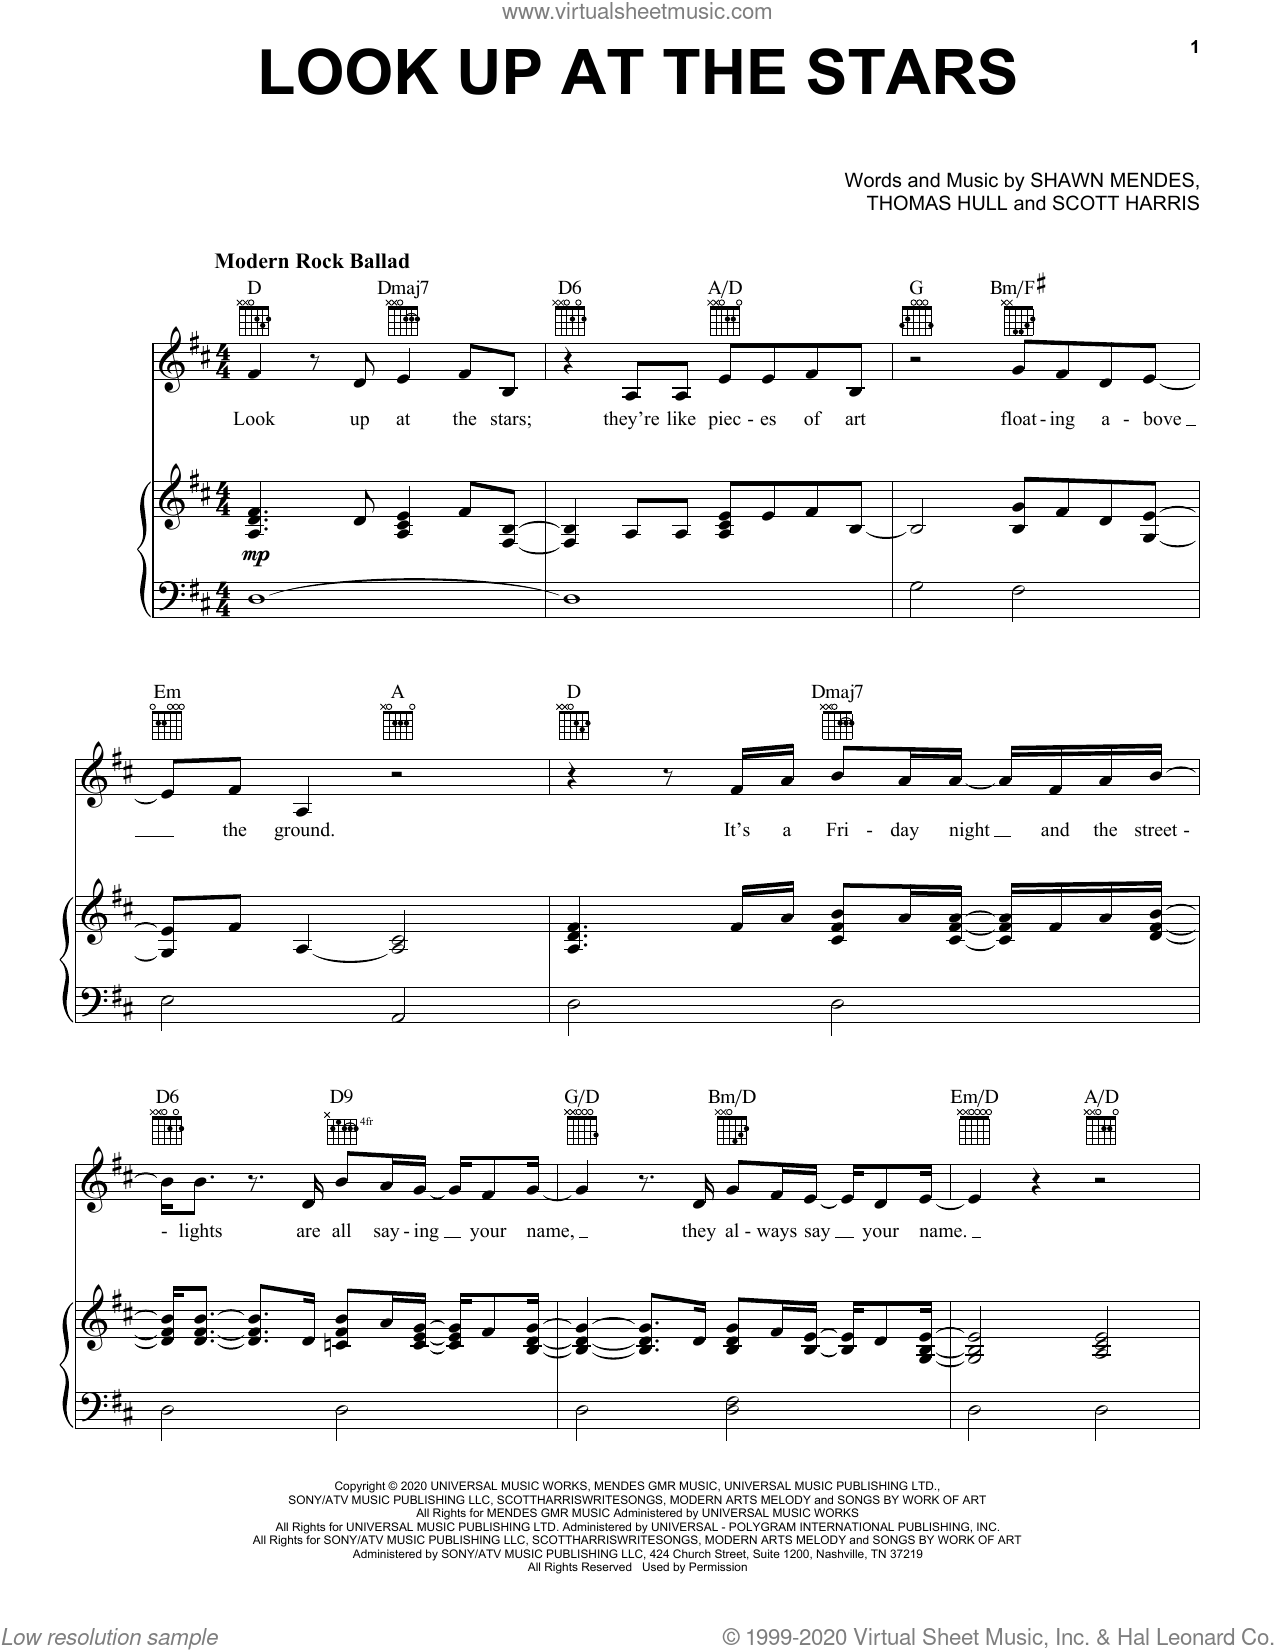 Look Up At The Stars sheet music for voice, piano or guitar by Shawn Mendes, Scott Harris and Tom Hull, intermediate skill level